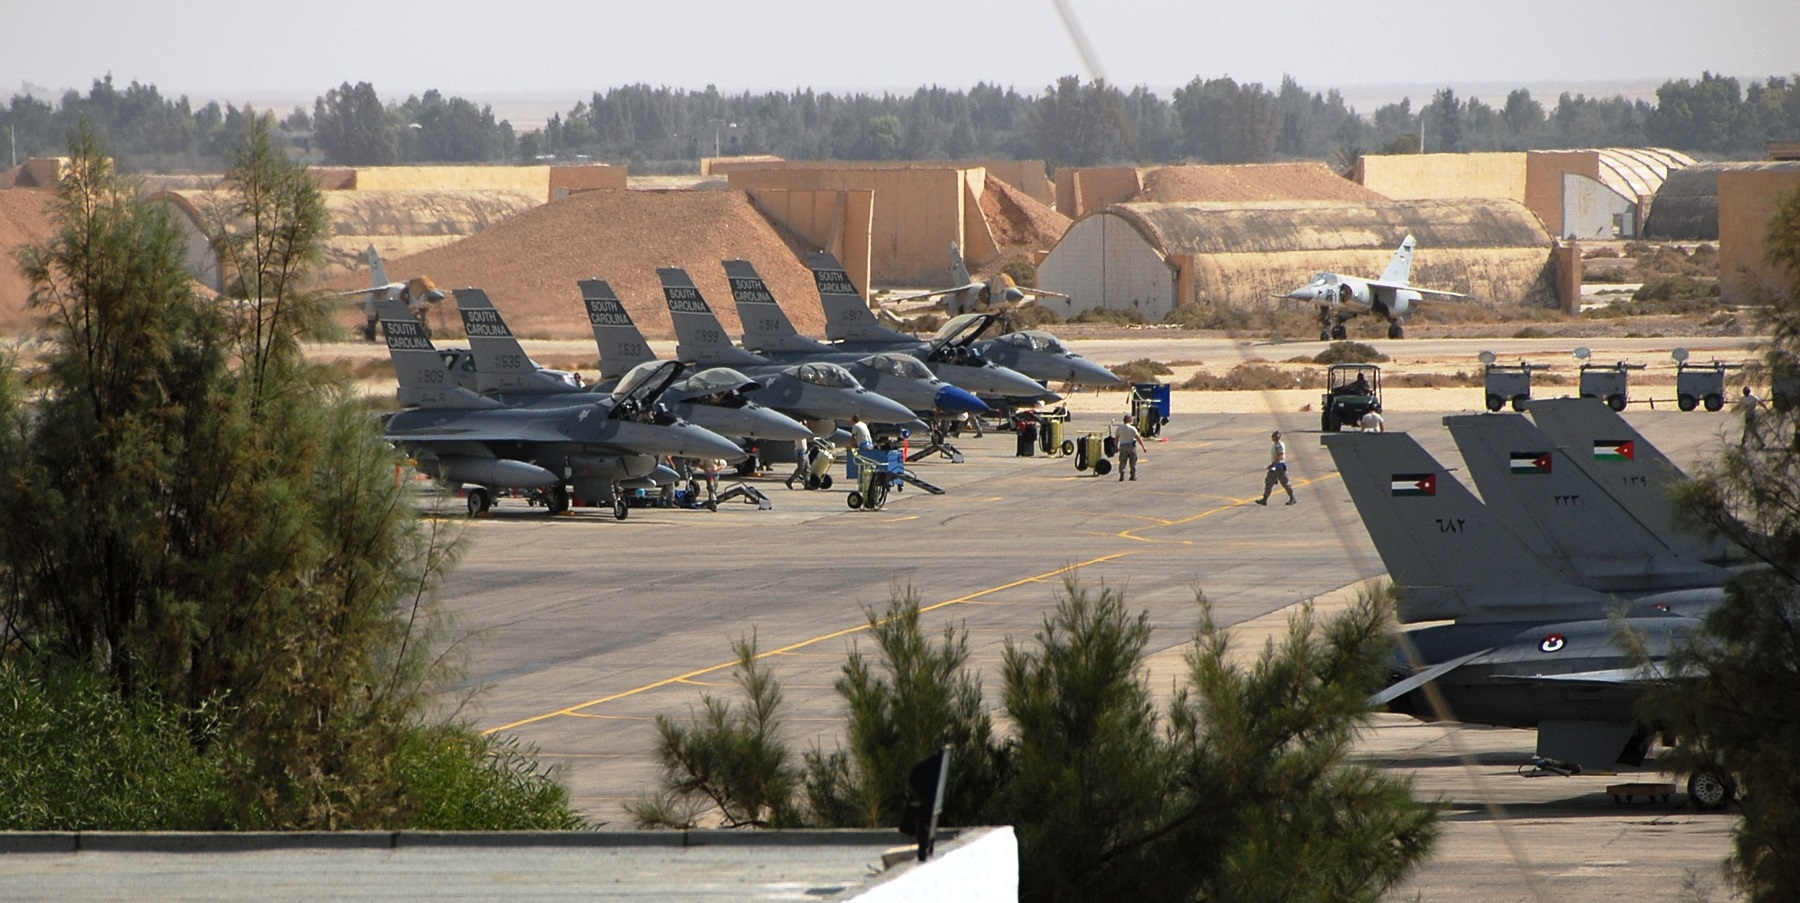 US Military To Expand Jordanian Air Base To Use It For Oprations In